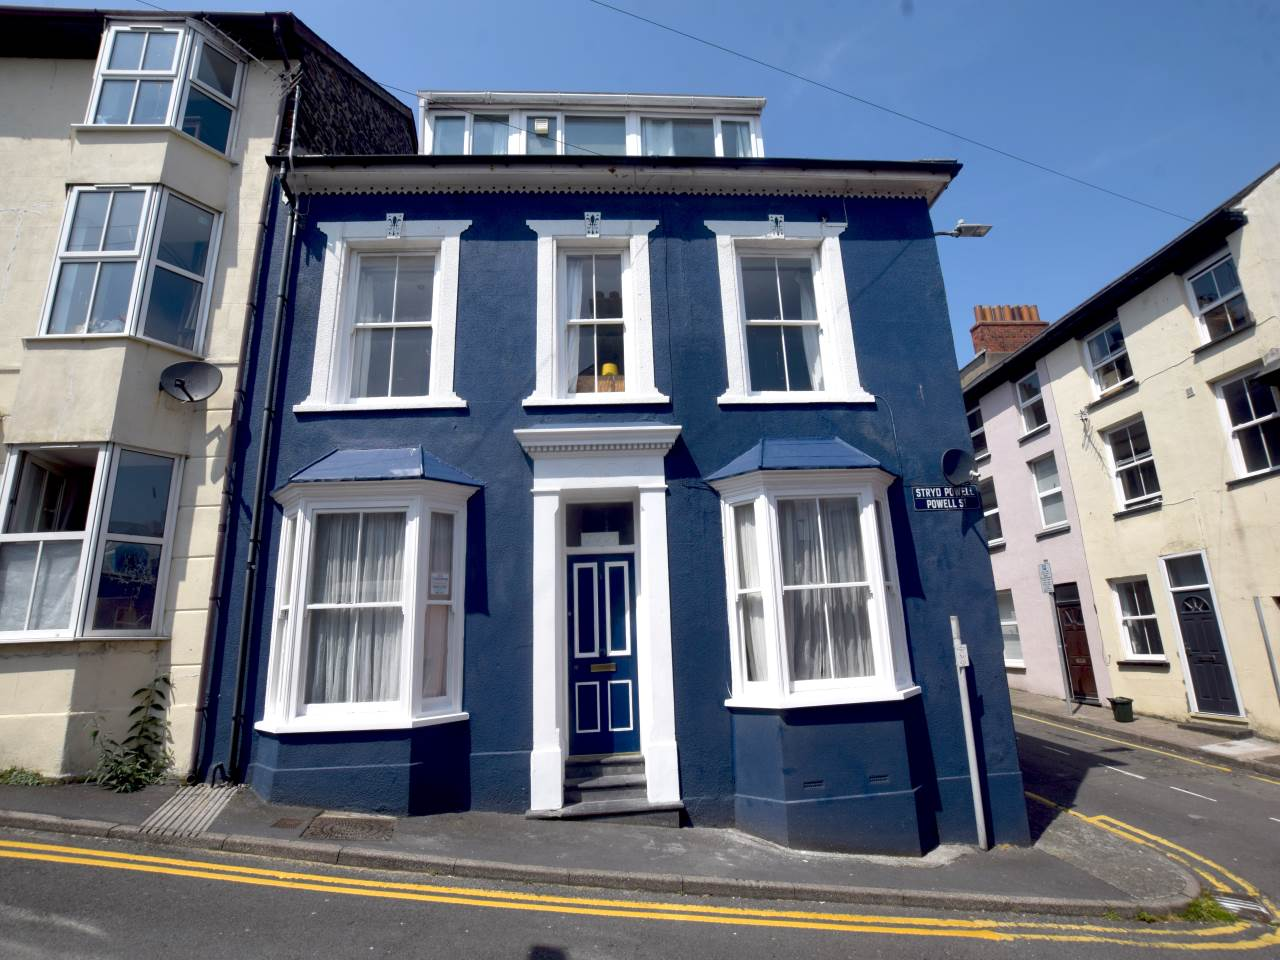 4 bed house to rent in Powell Street, Aberystwyth, SY23